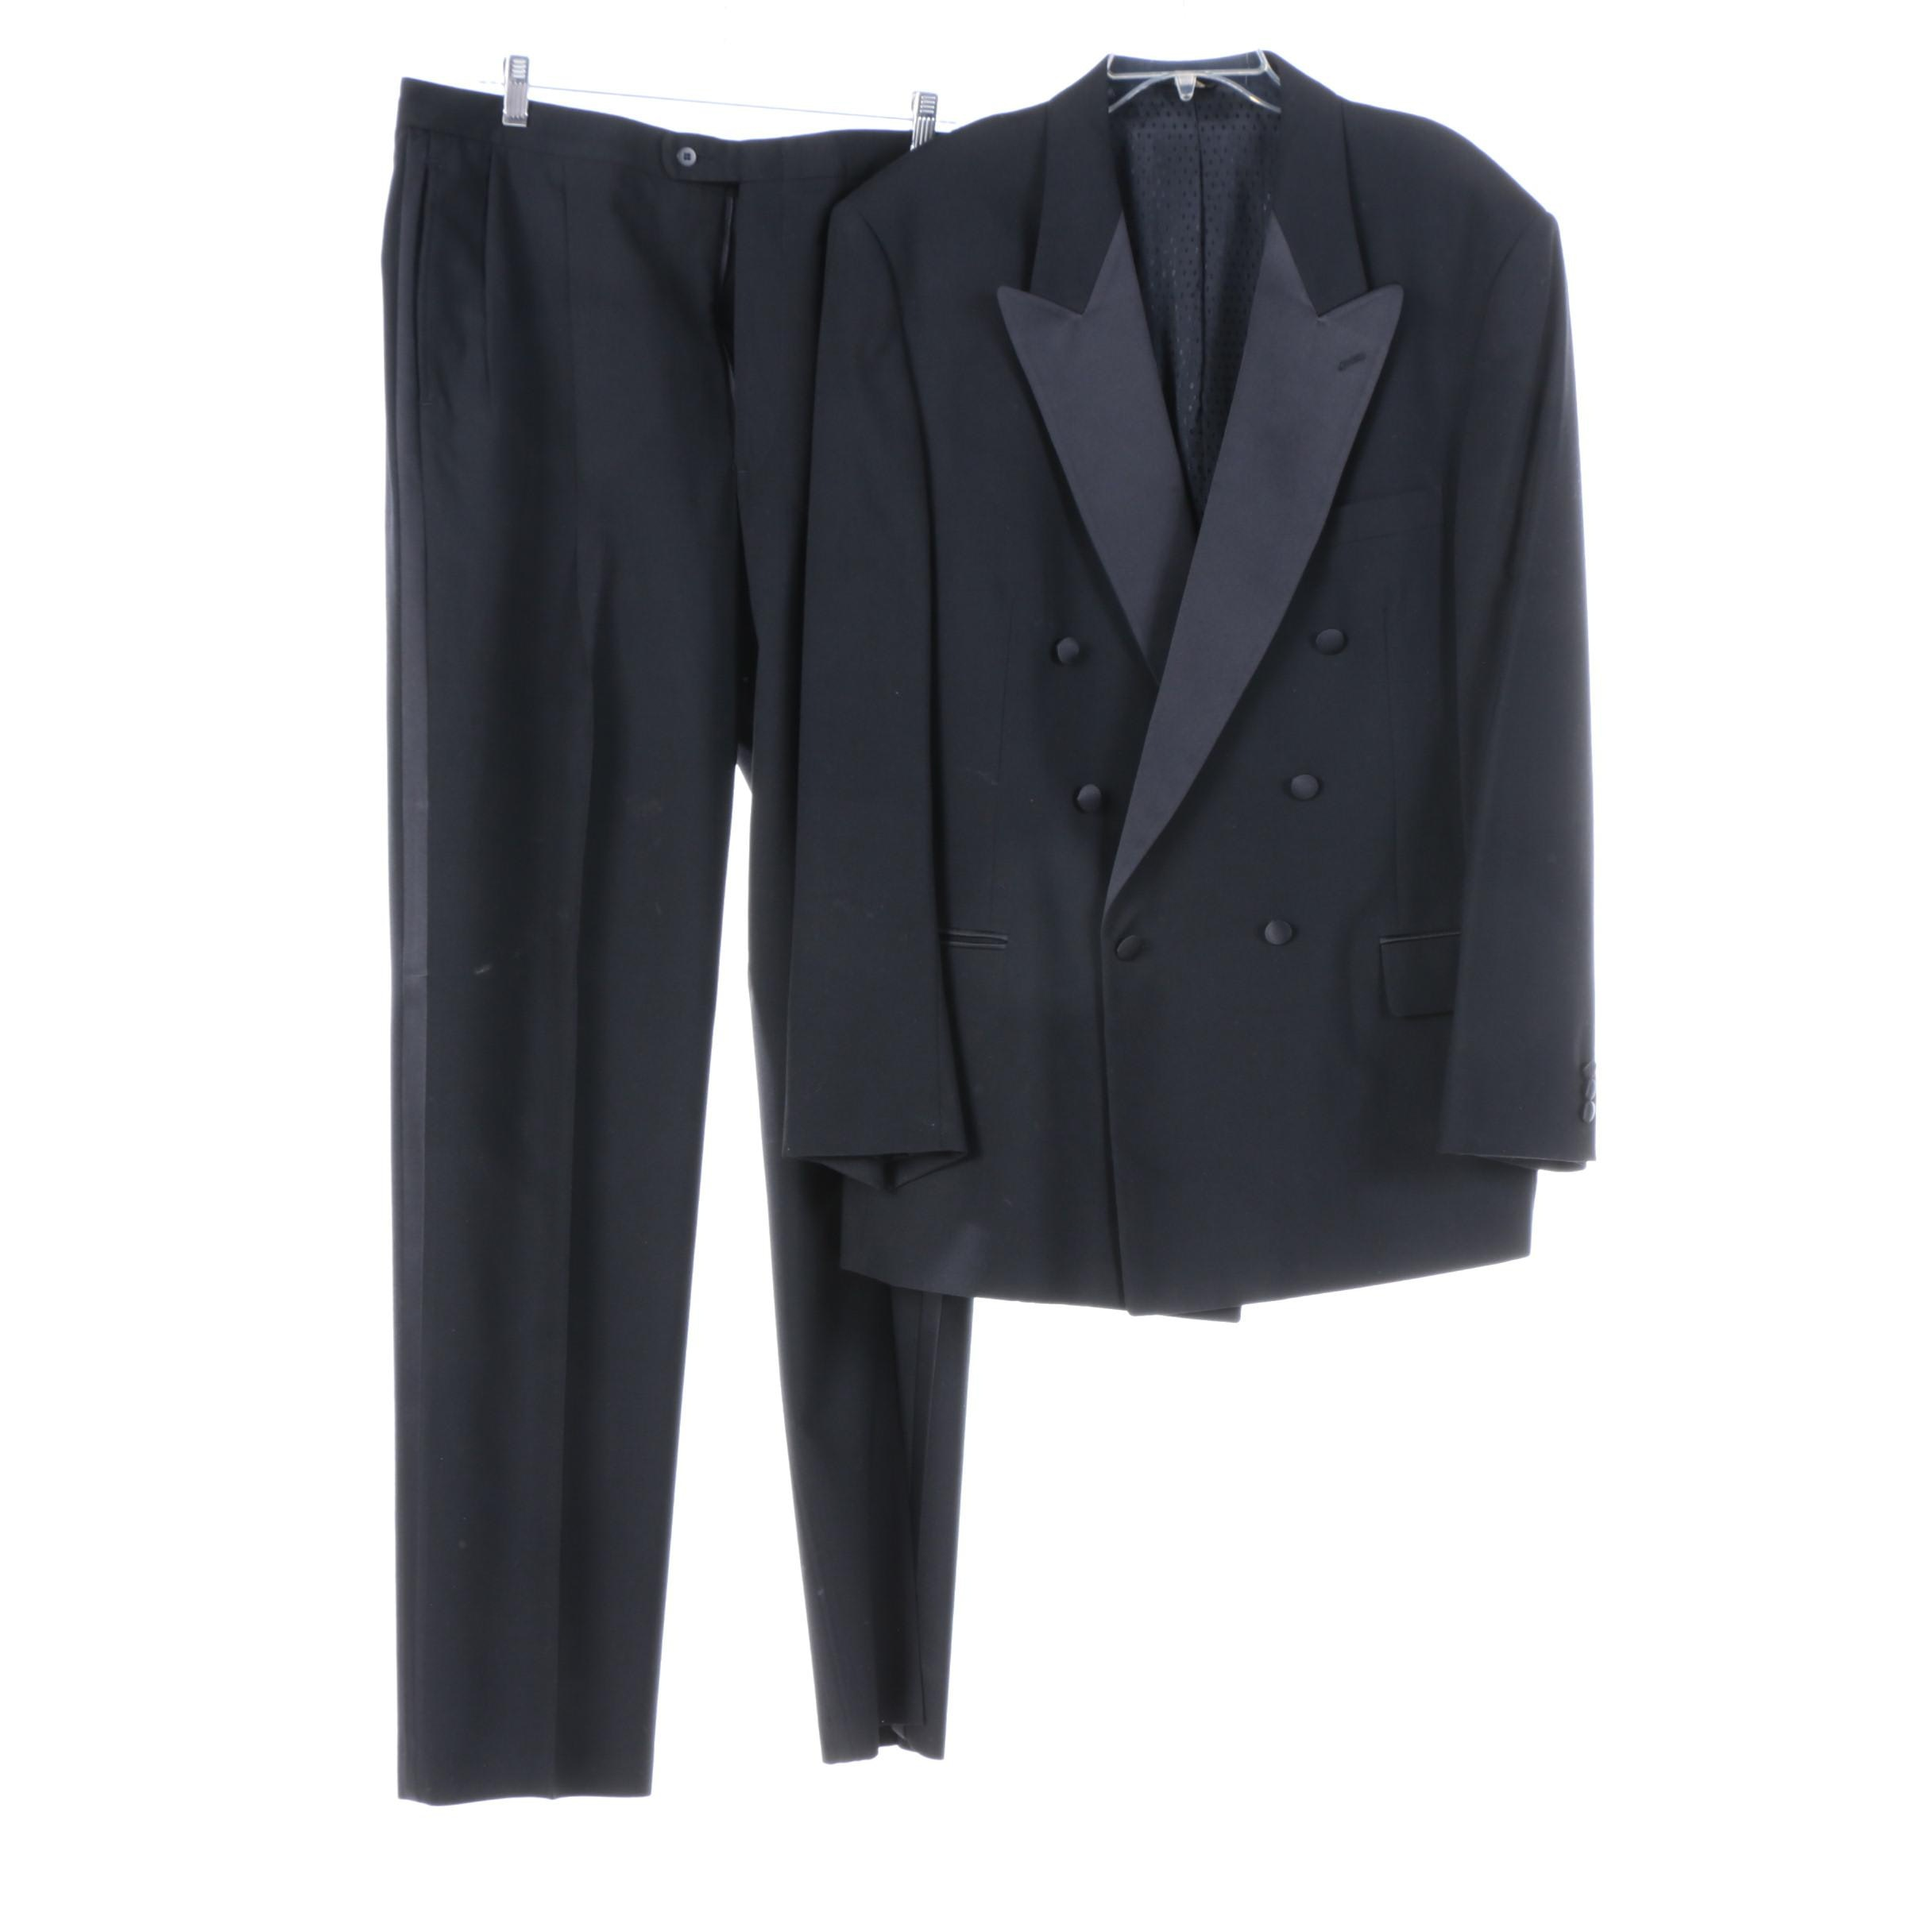 Men's Bachrach Black Wool Double-Breasted Tuxedo Coat and Pants